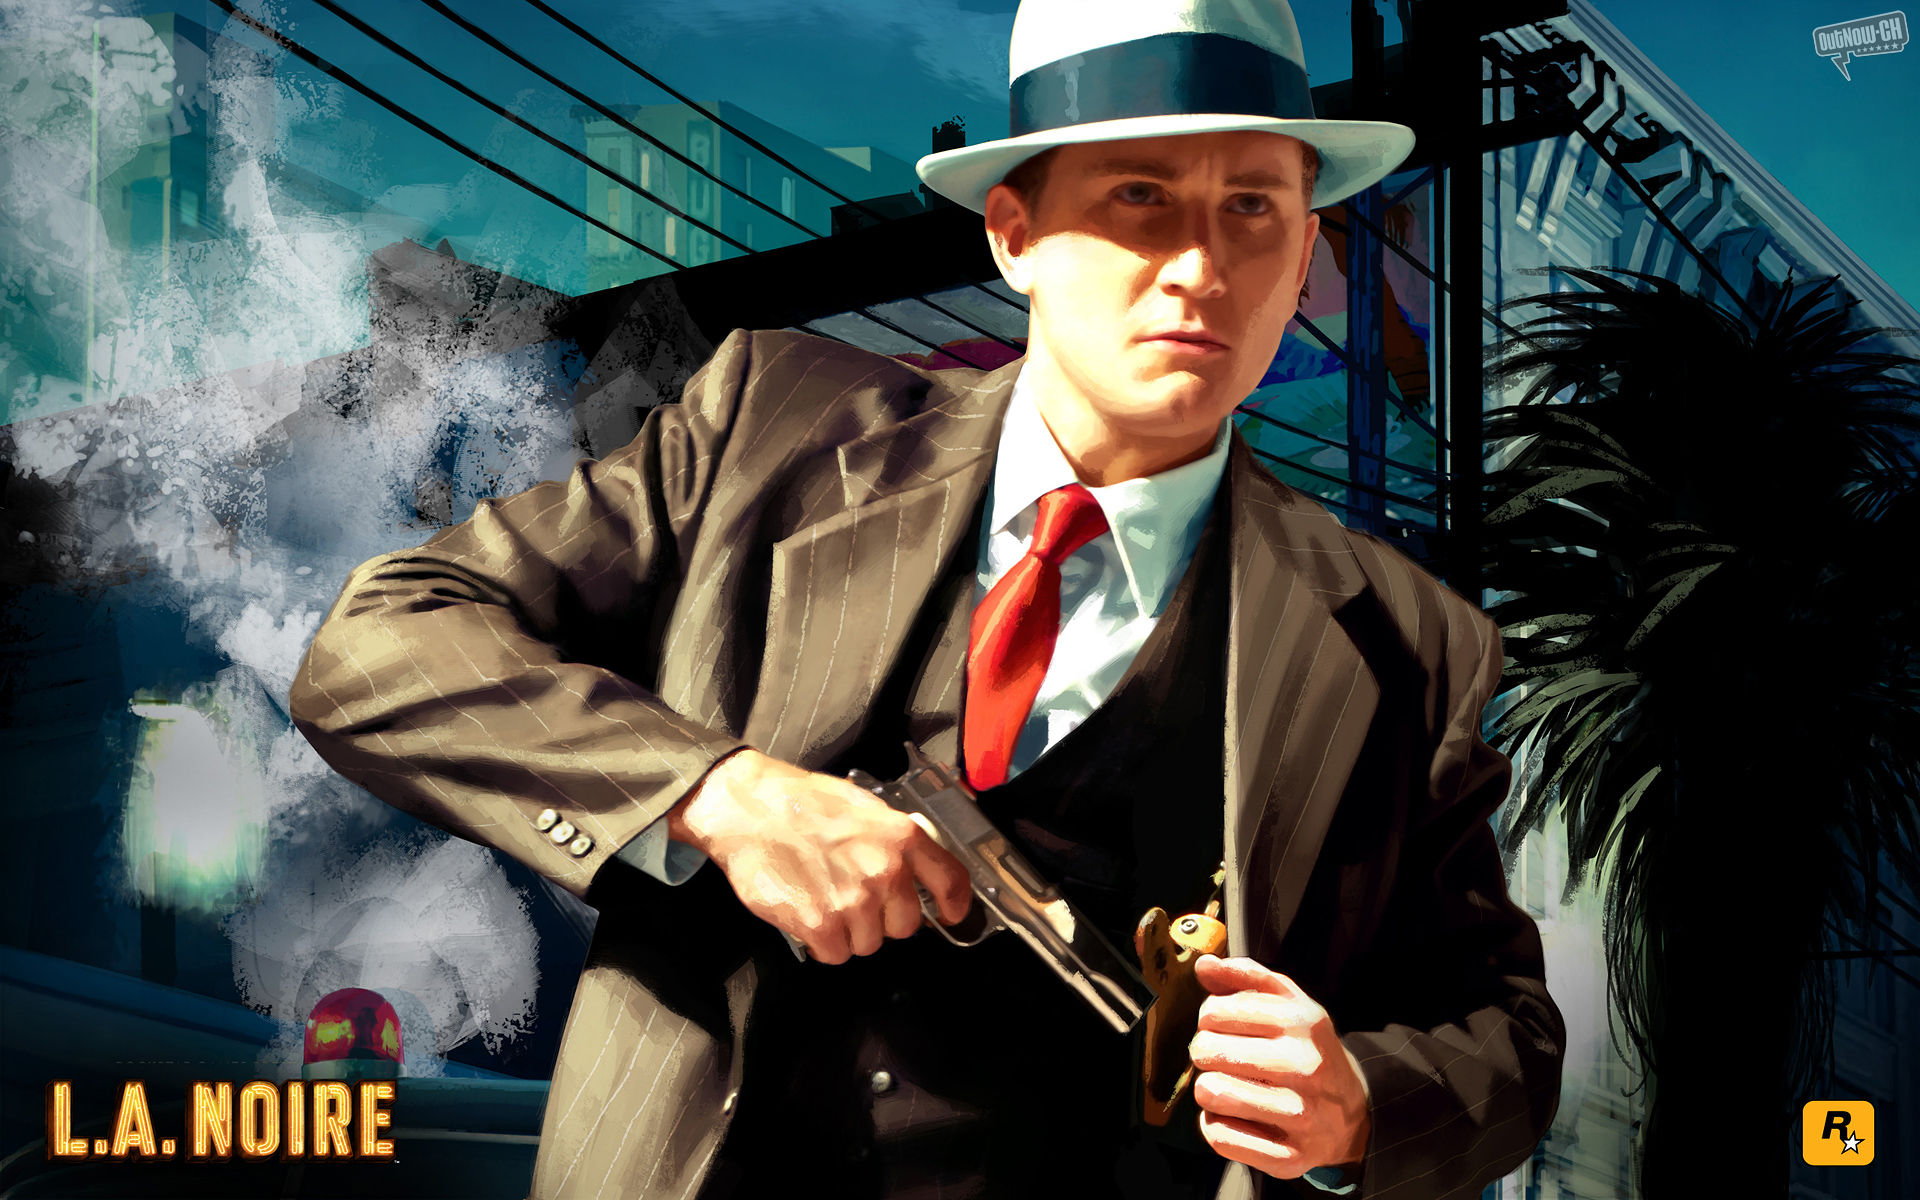 L.A. Noire High Quality Background on Wallpapers Vista